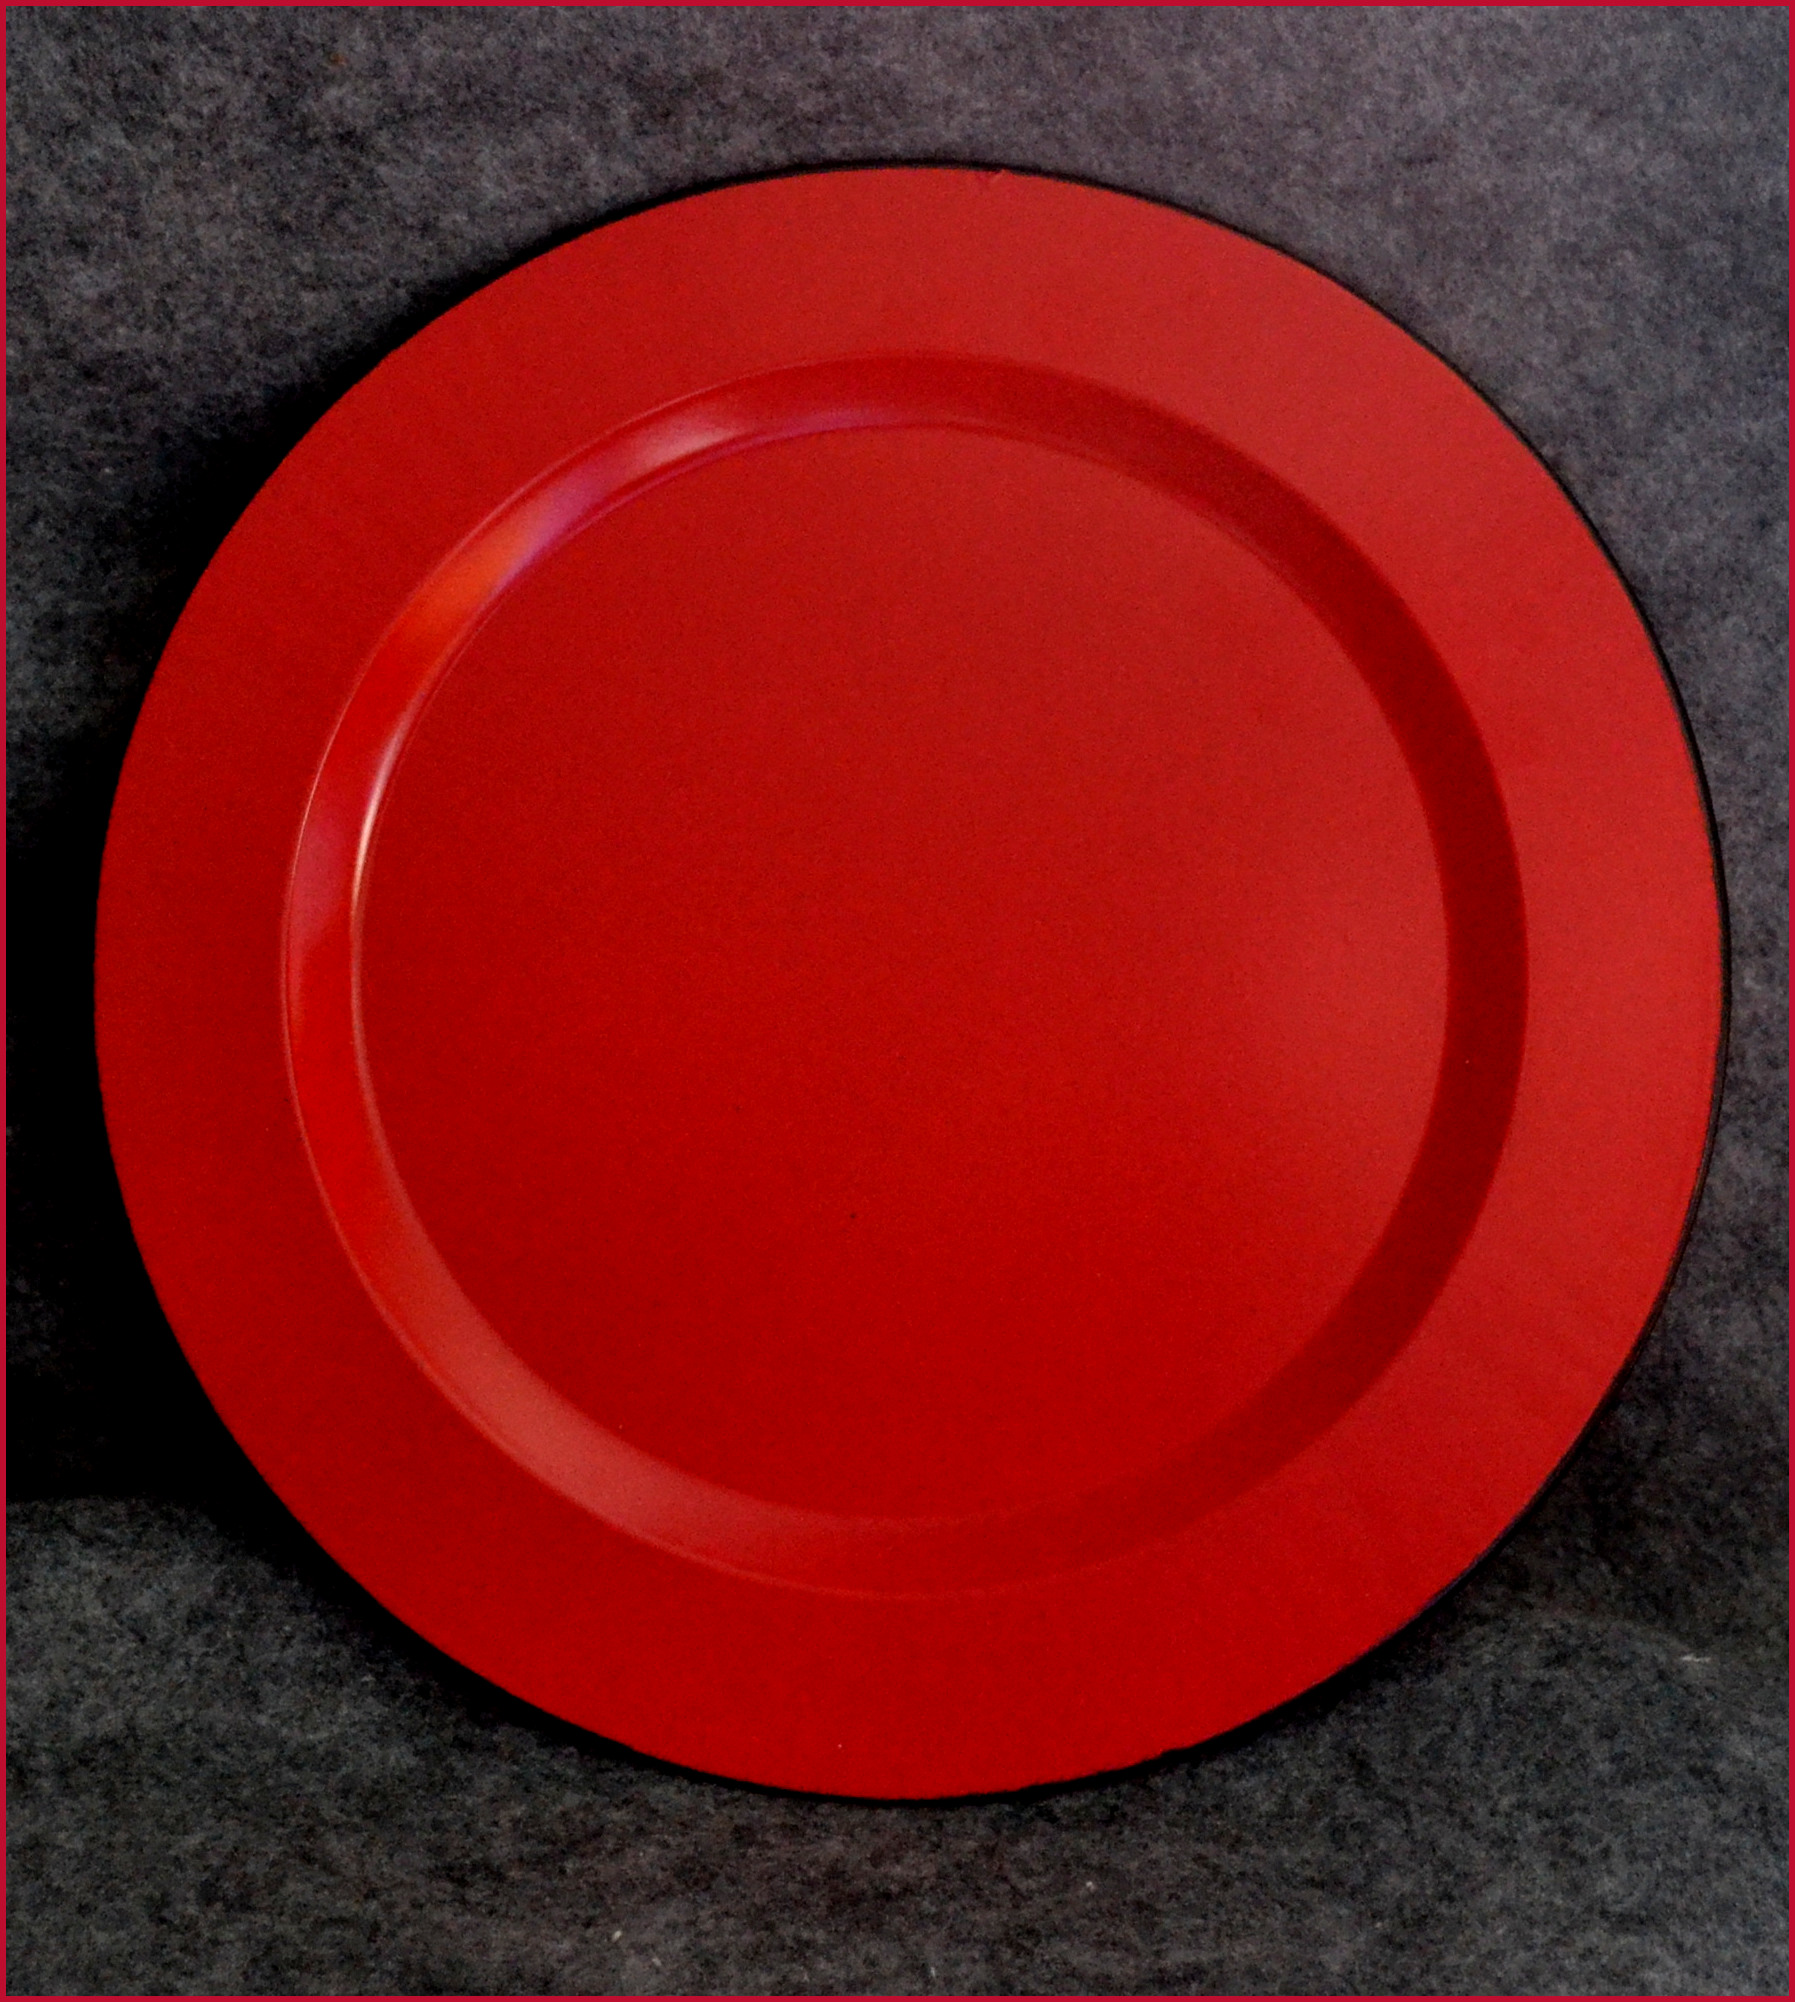 metal-10-inch-bright-red-plate-tmx89059-boarder.jpg